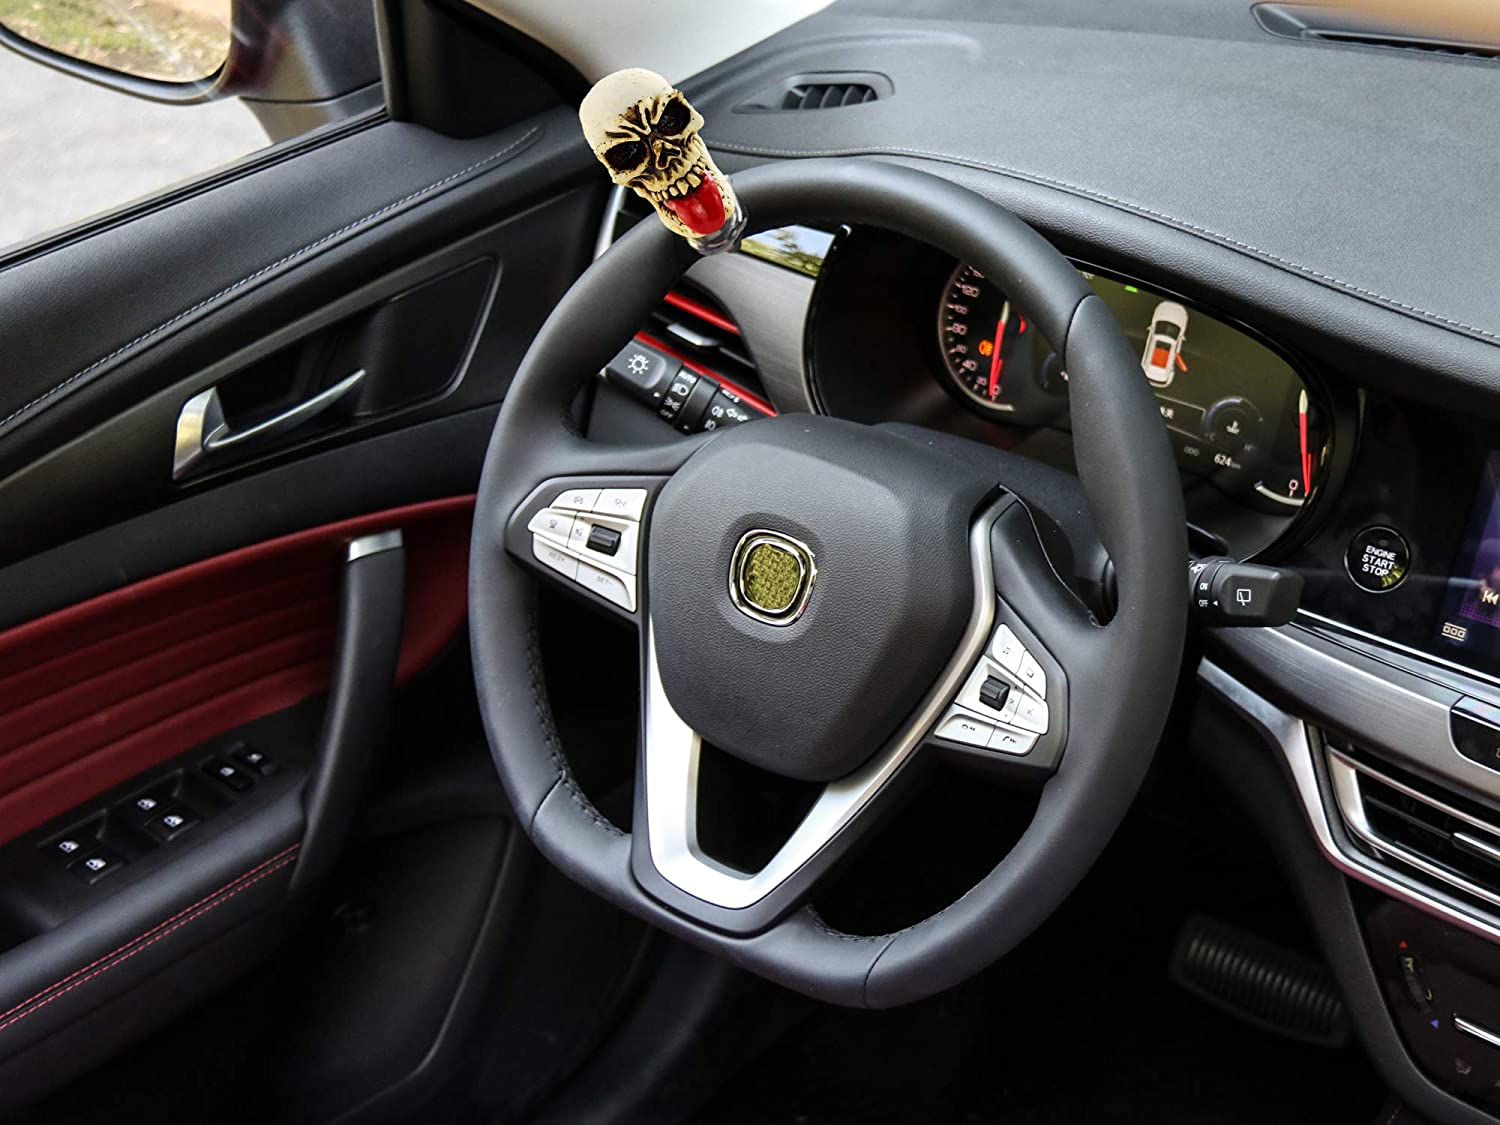 Gold Bashineng Steering Wheel Ball Fist Shape Power Handle Suicide Control Spinner Knob Fit Most Truck SUV Cars